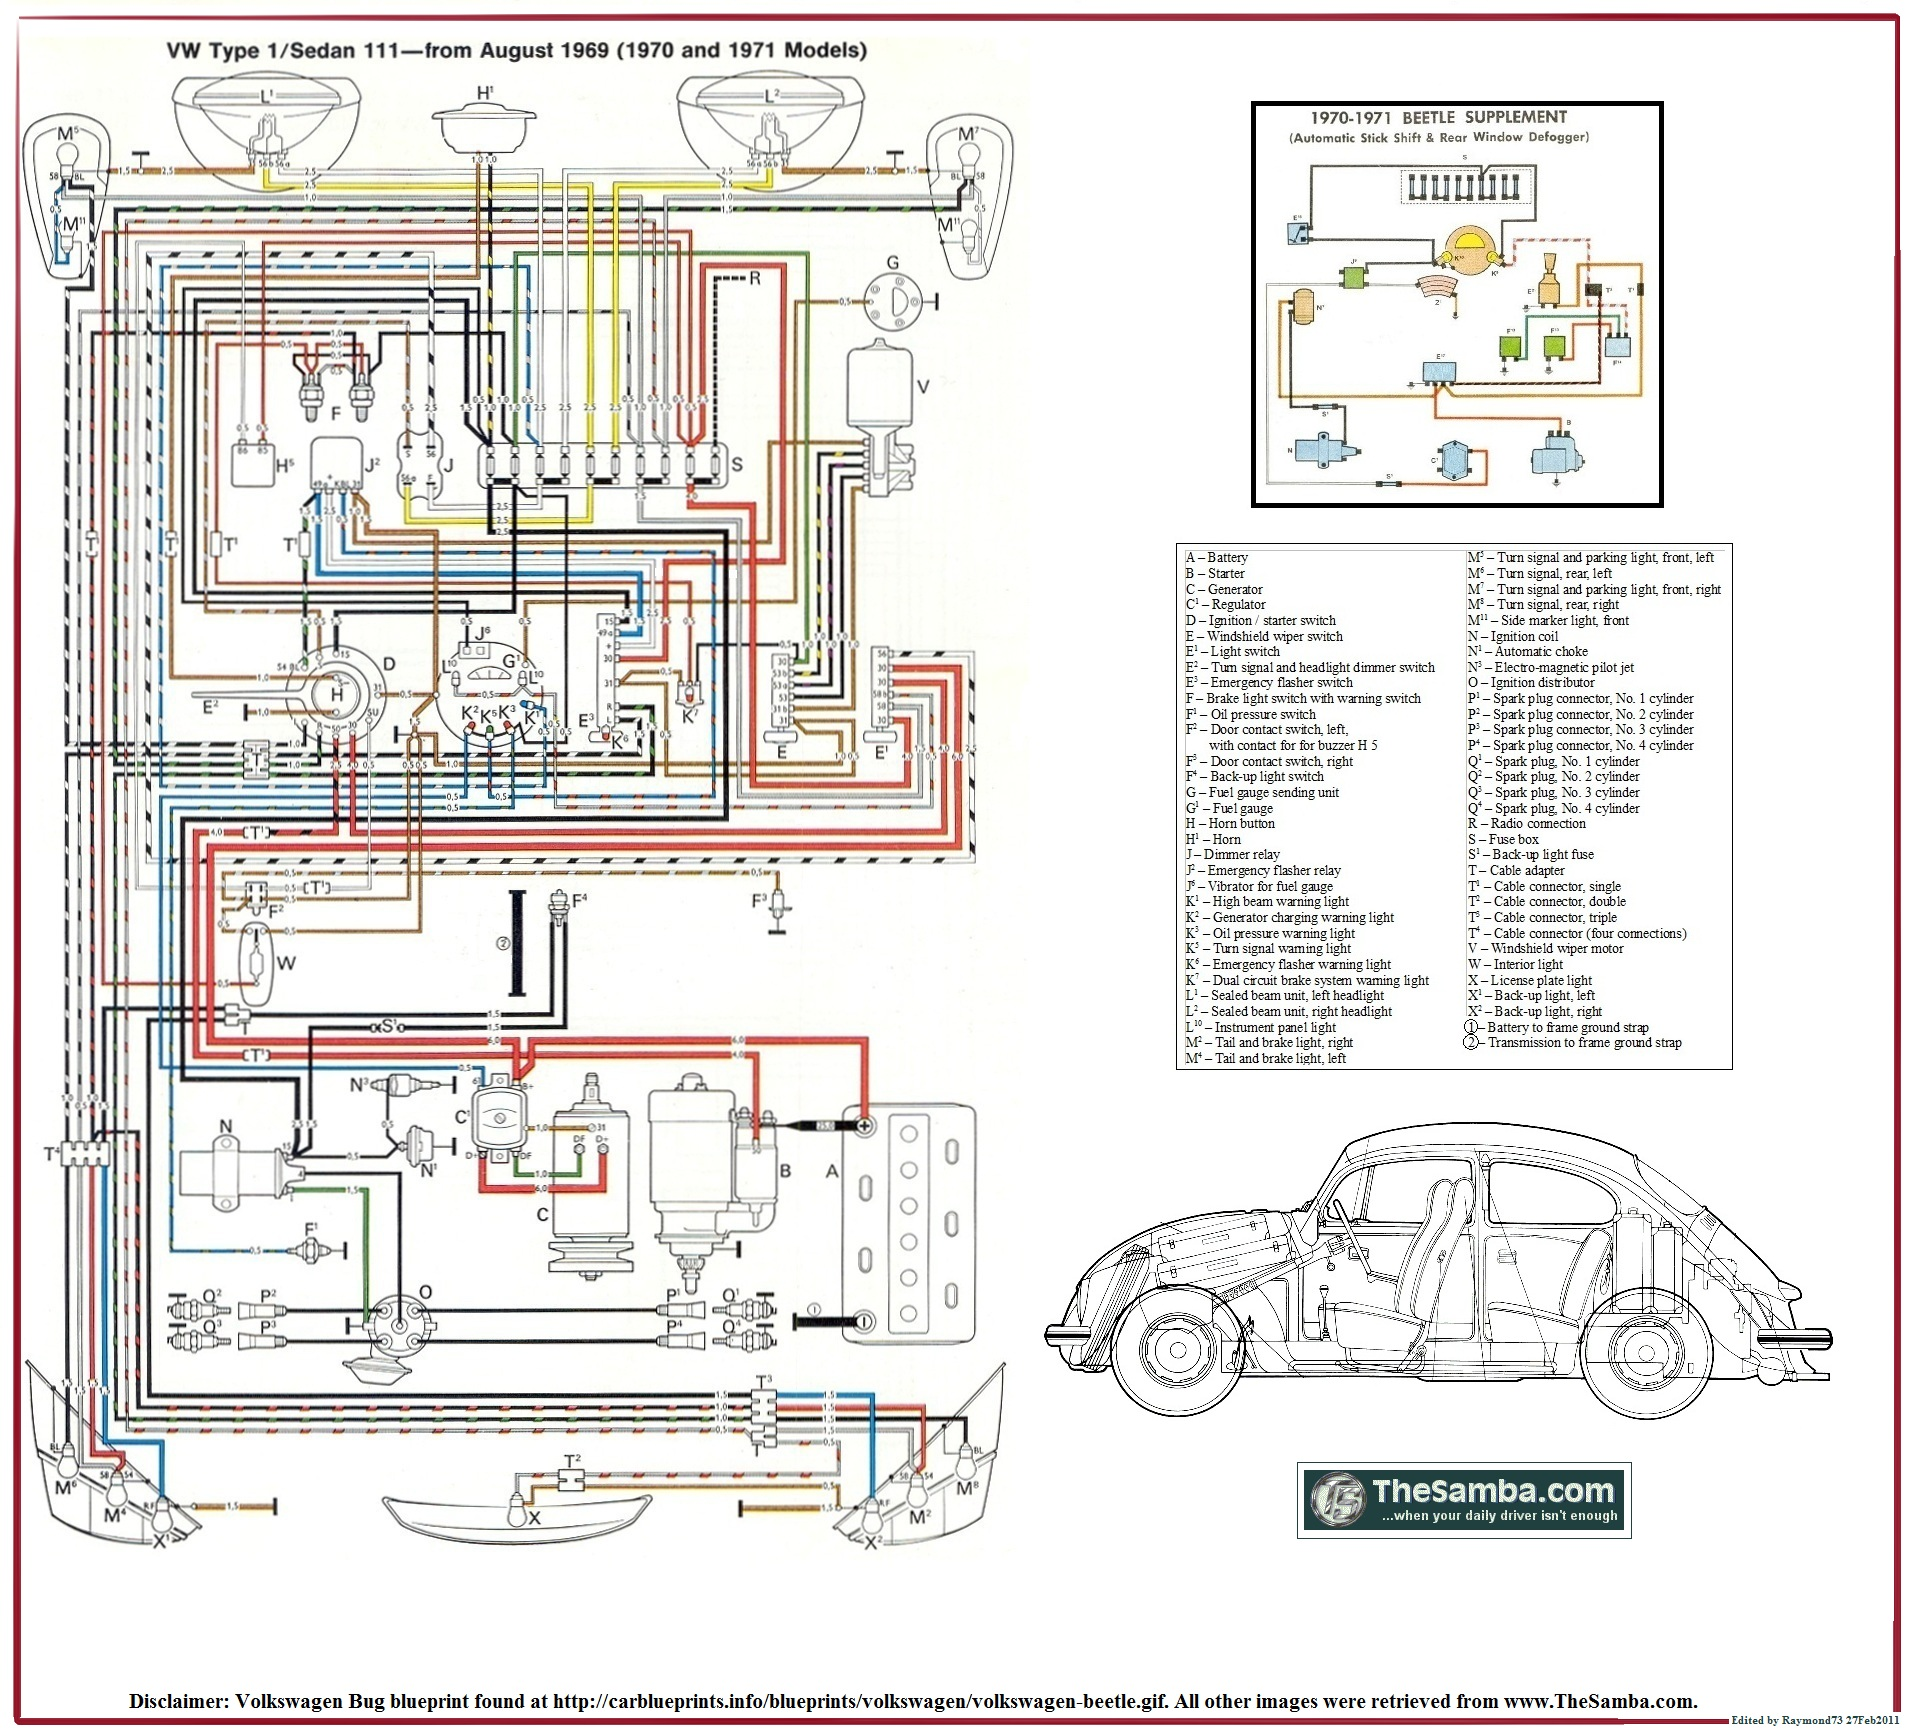 geo tracker dash wiring gsmoon wiring diagrams vw emergency switch wiring diagram 1969 1300 beetle wiring diagram vw forum vzi